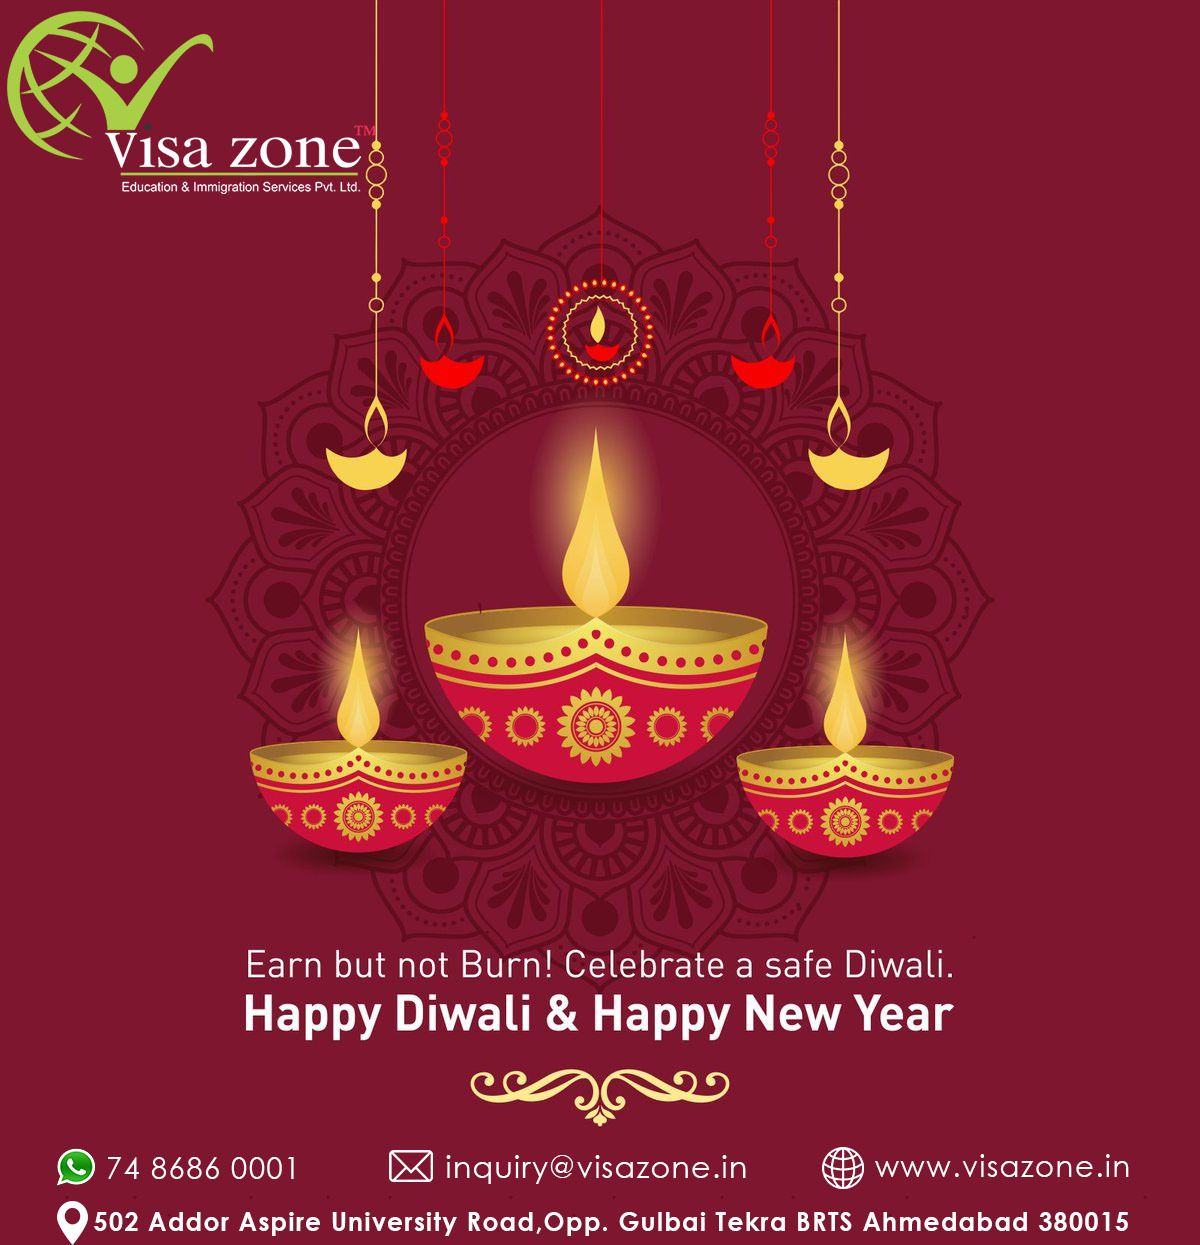 Diwali is celebrated as the new year day in the Hindu